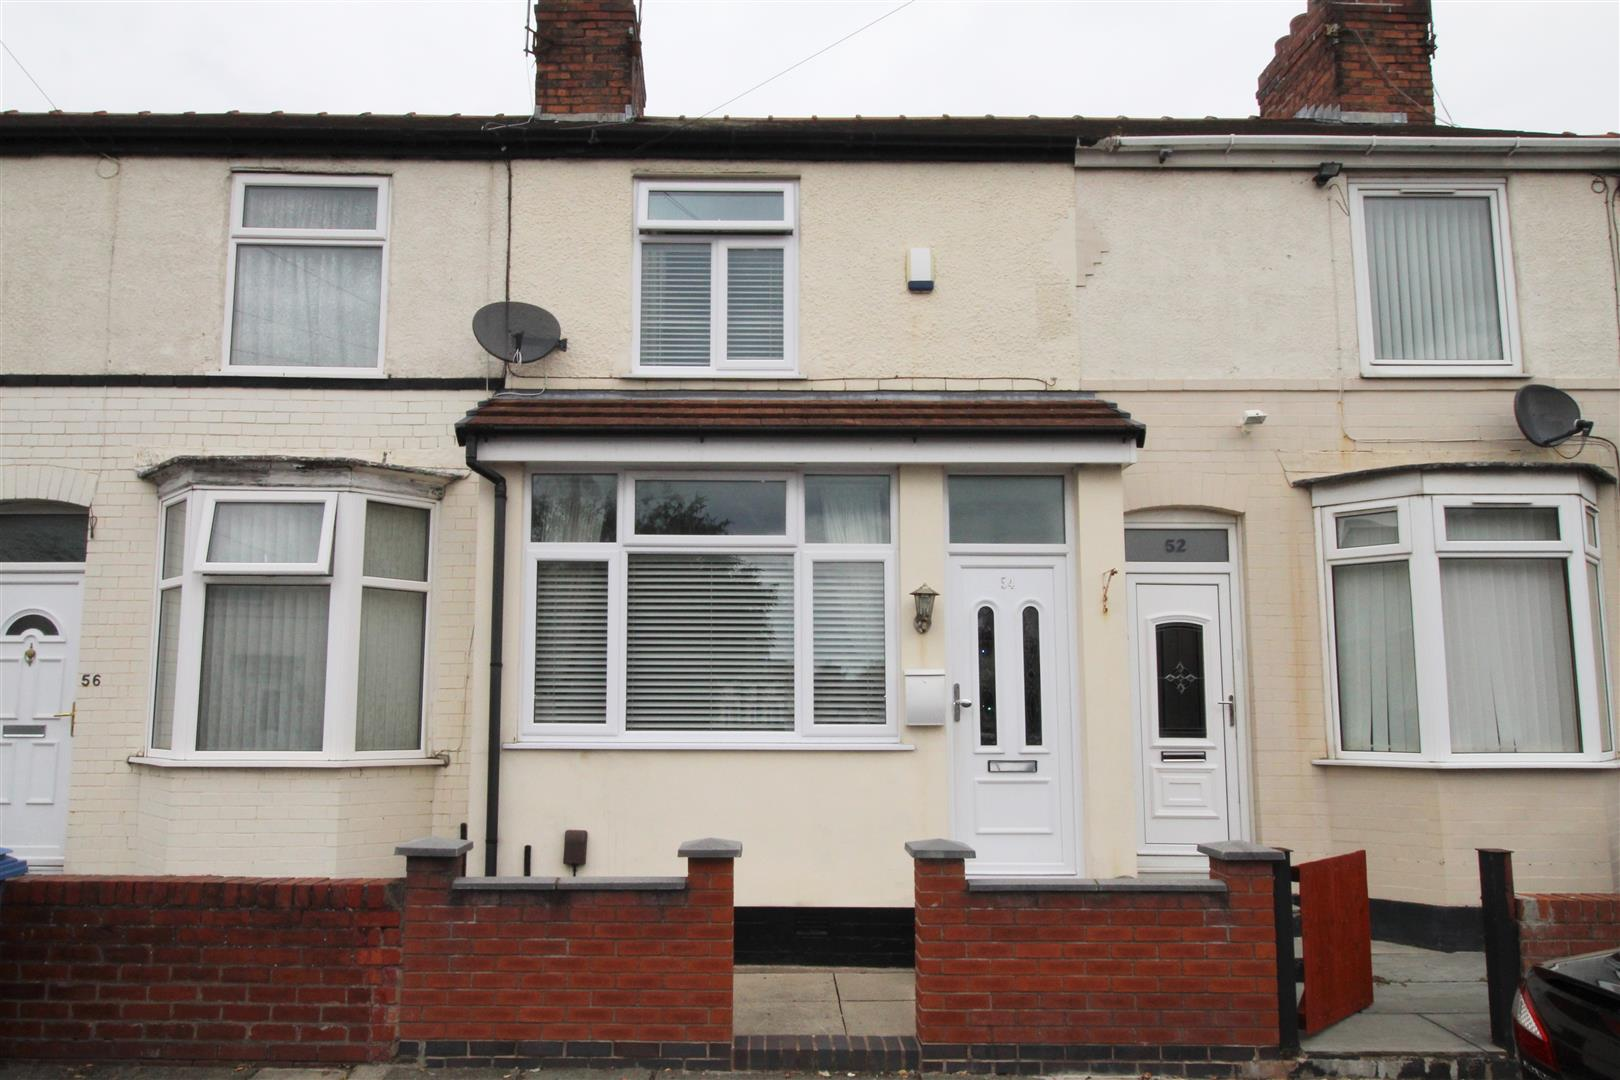 2 Bedrooms, House - Mid Terrace, Albany Road, Walton, Liverpool